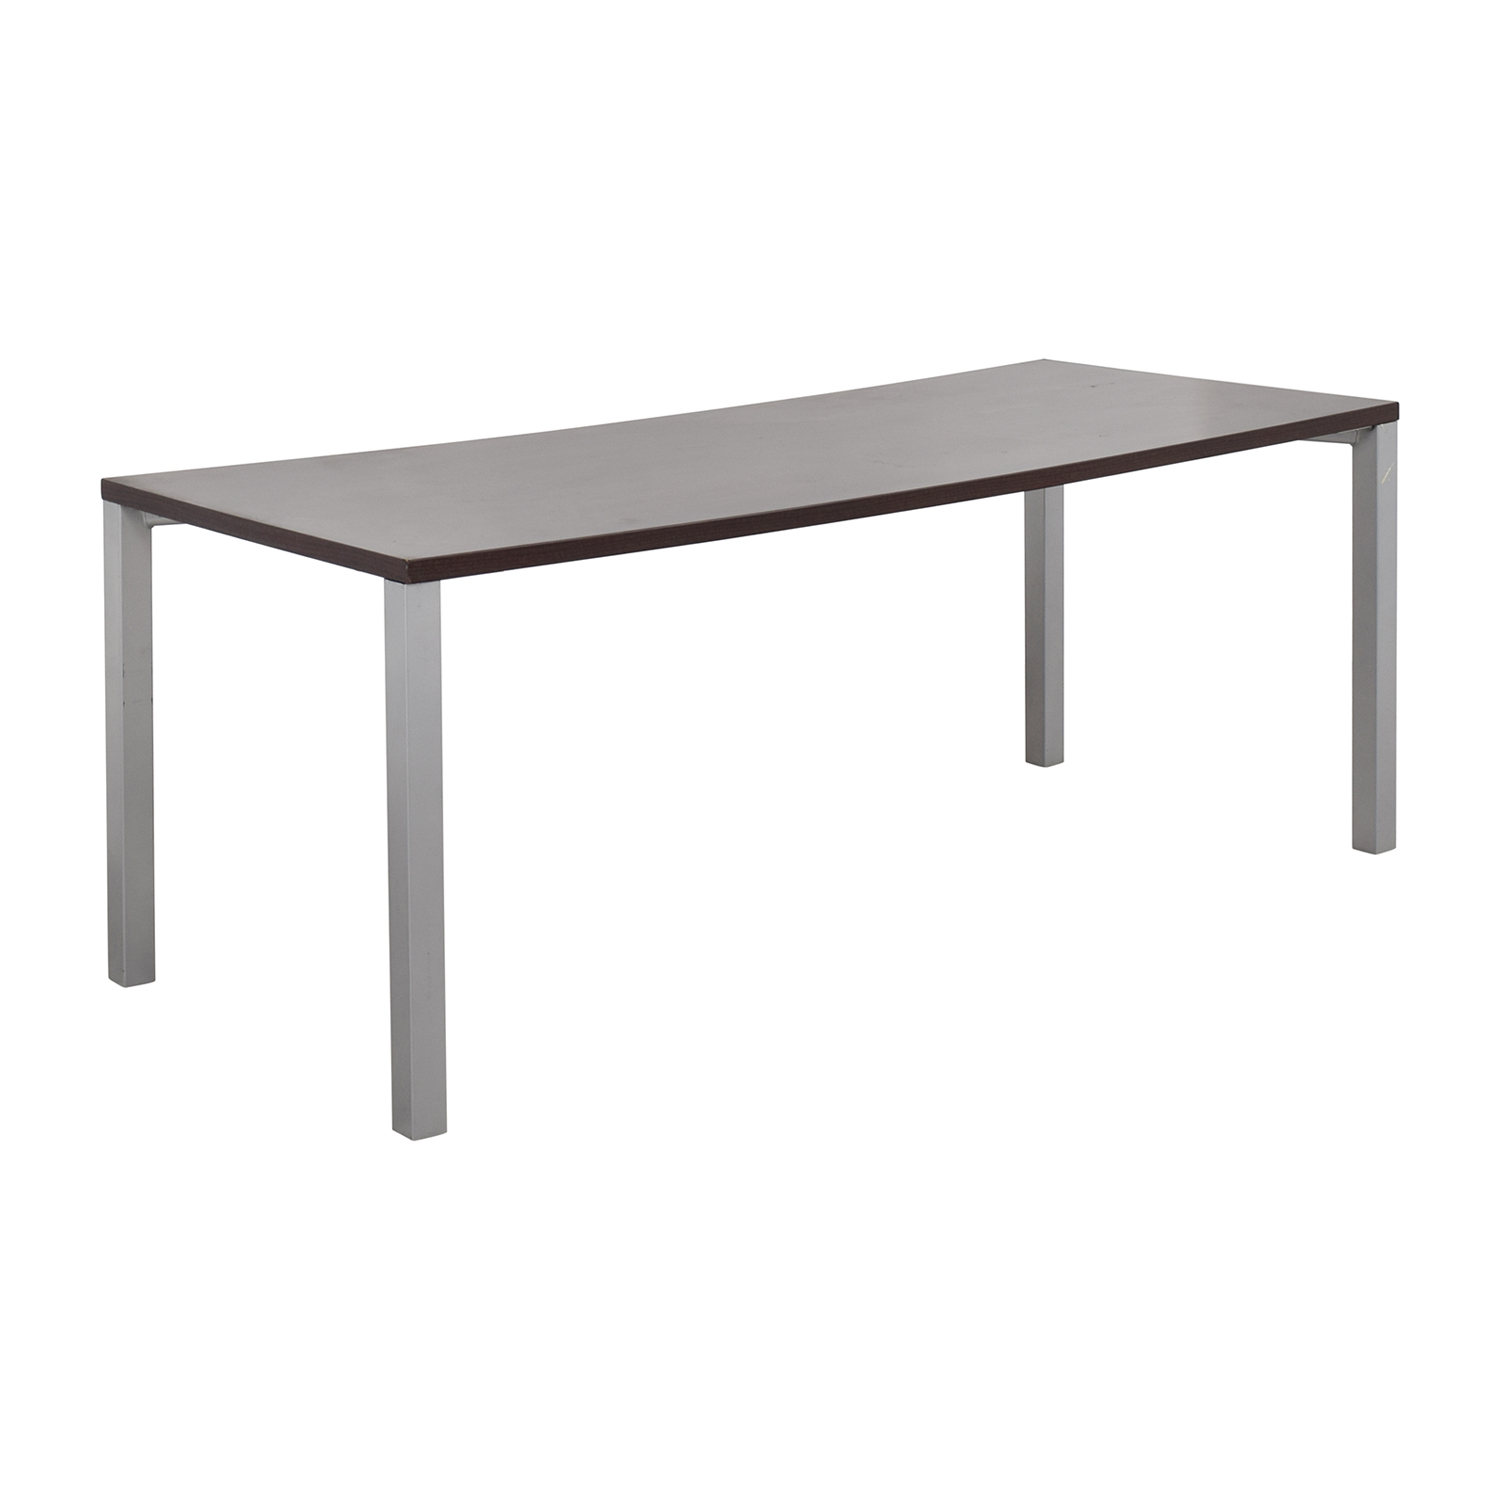 Steelcase Steelcase Currency Martin Desk price